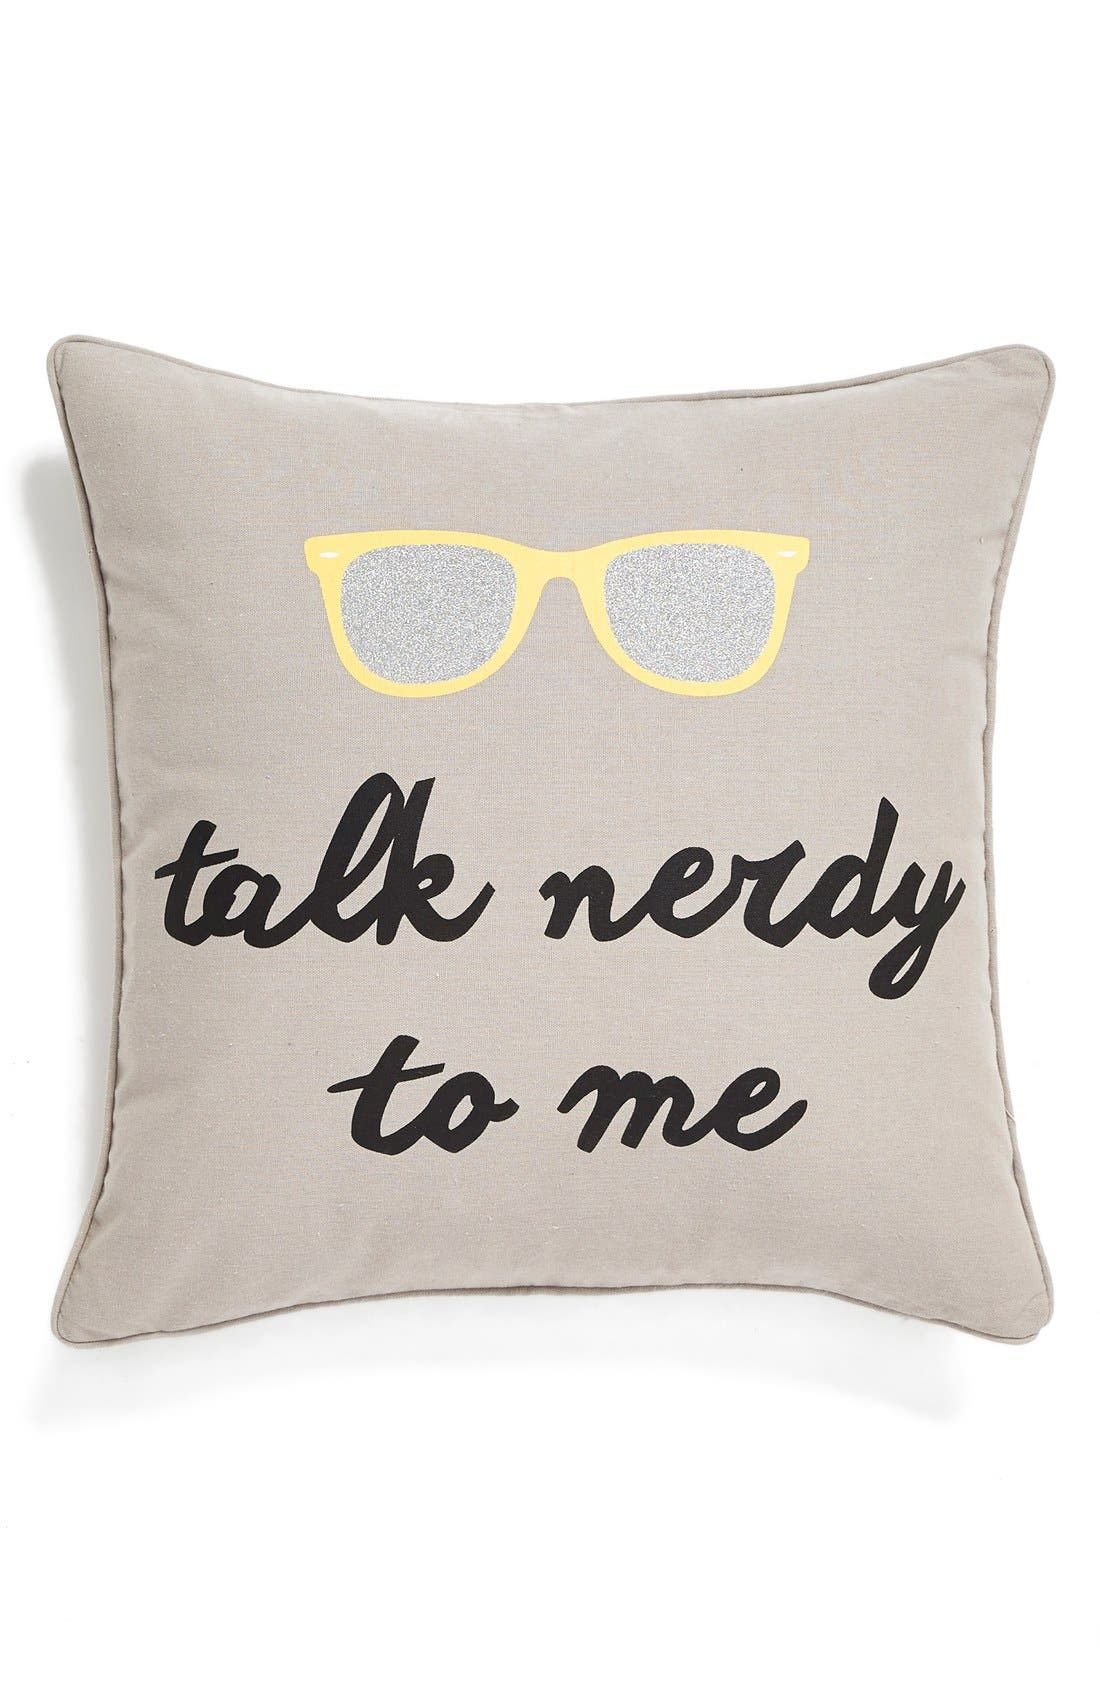 Alternate Image 1 Selected - Levtex'Talk Nerdy to Me' Pillow